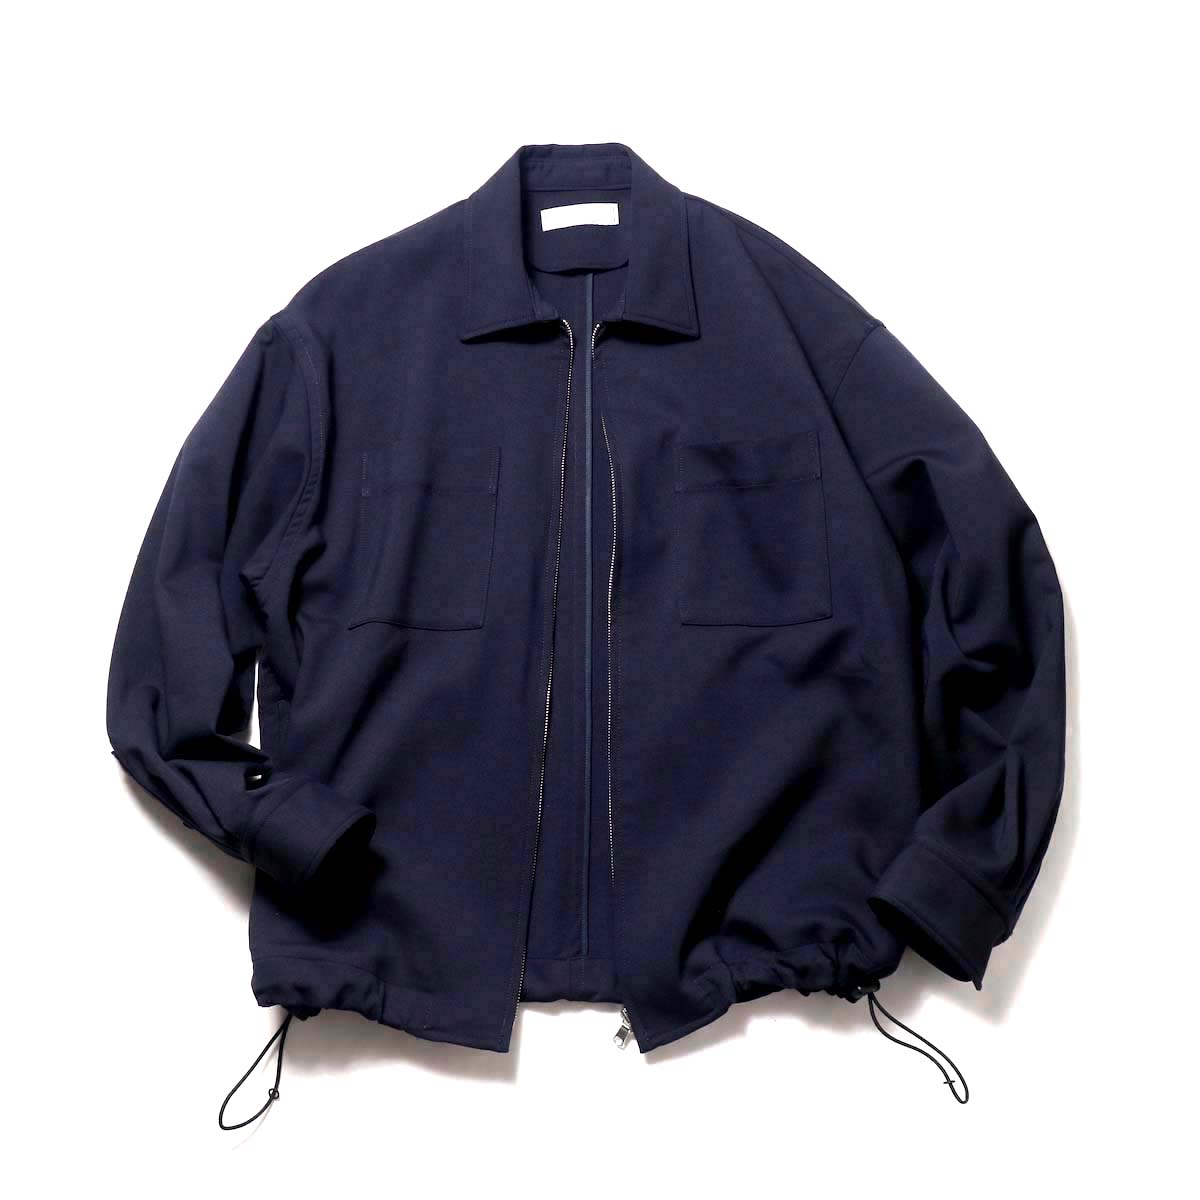 UNIVERSAL PRODUCTS / Double Cloth Zip Front Blouson (Navy)